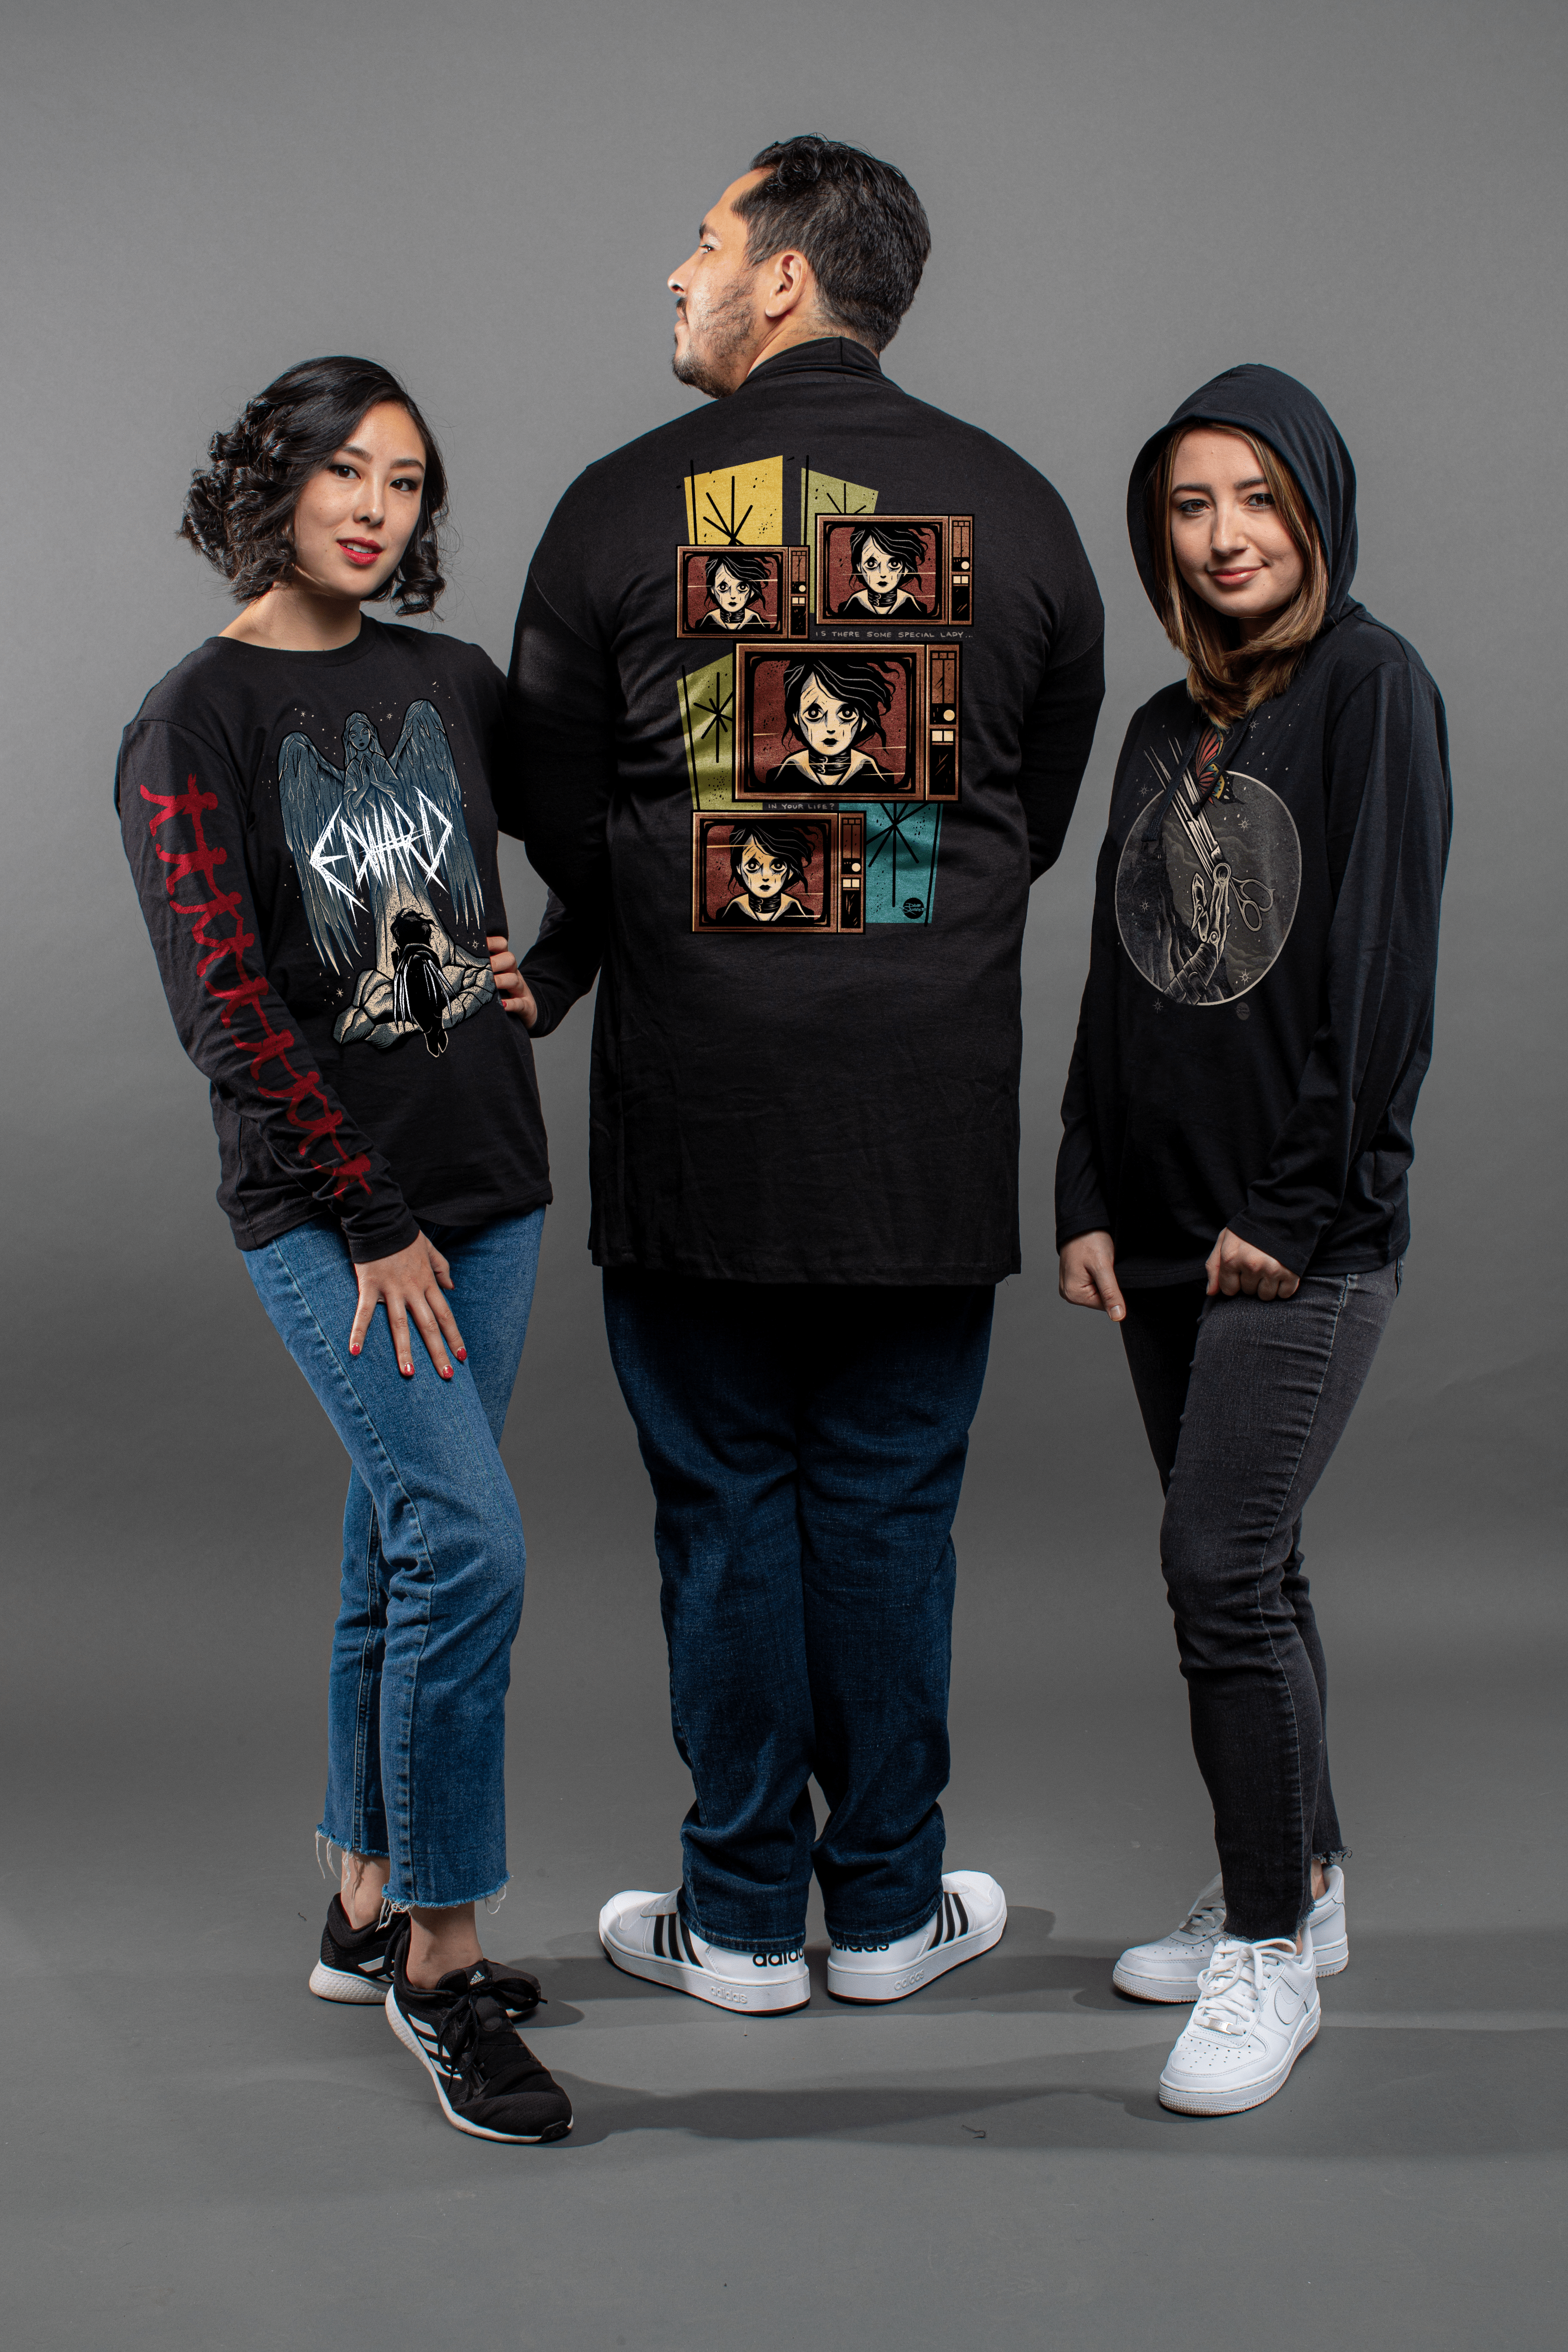 Edward Scissorhands Returns With the Loot Crate Capsule Collection! 2